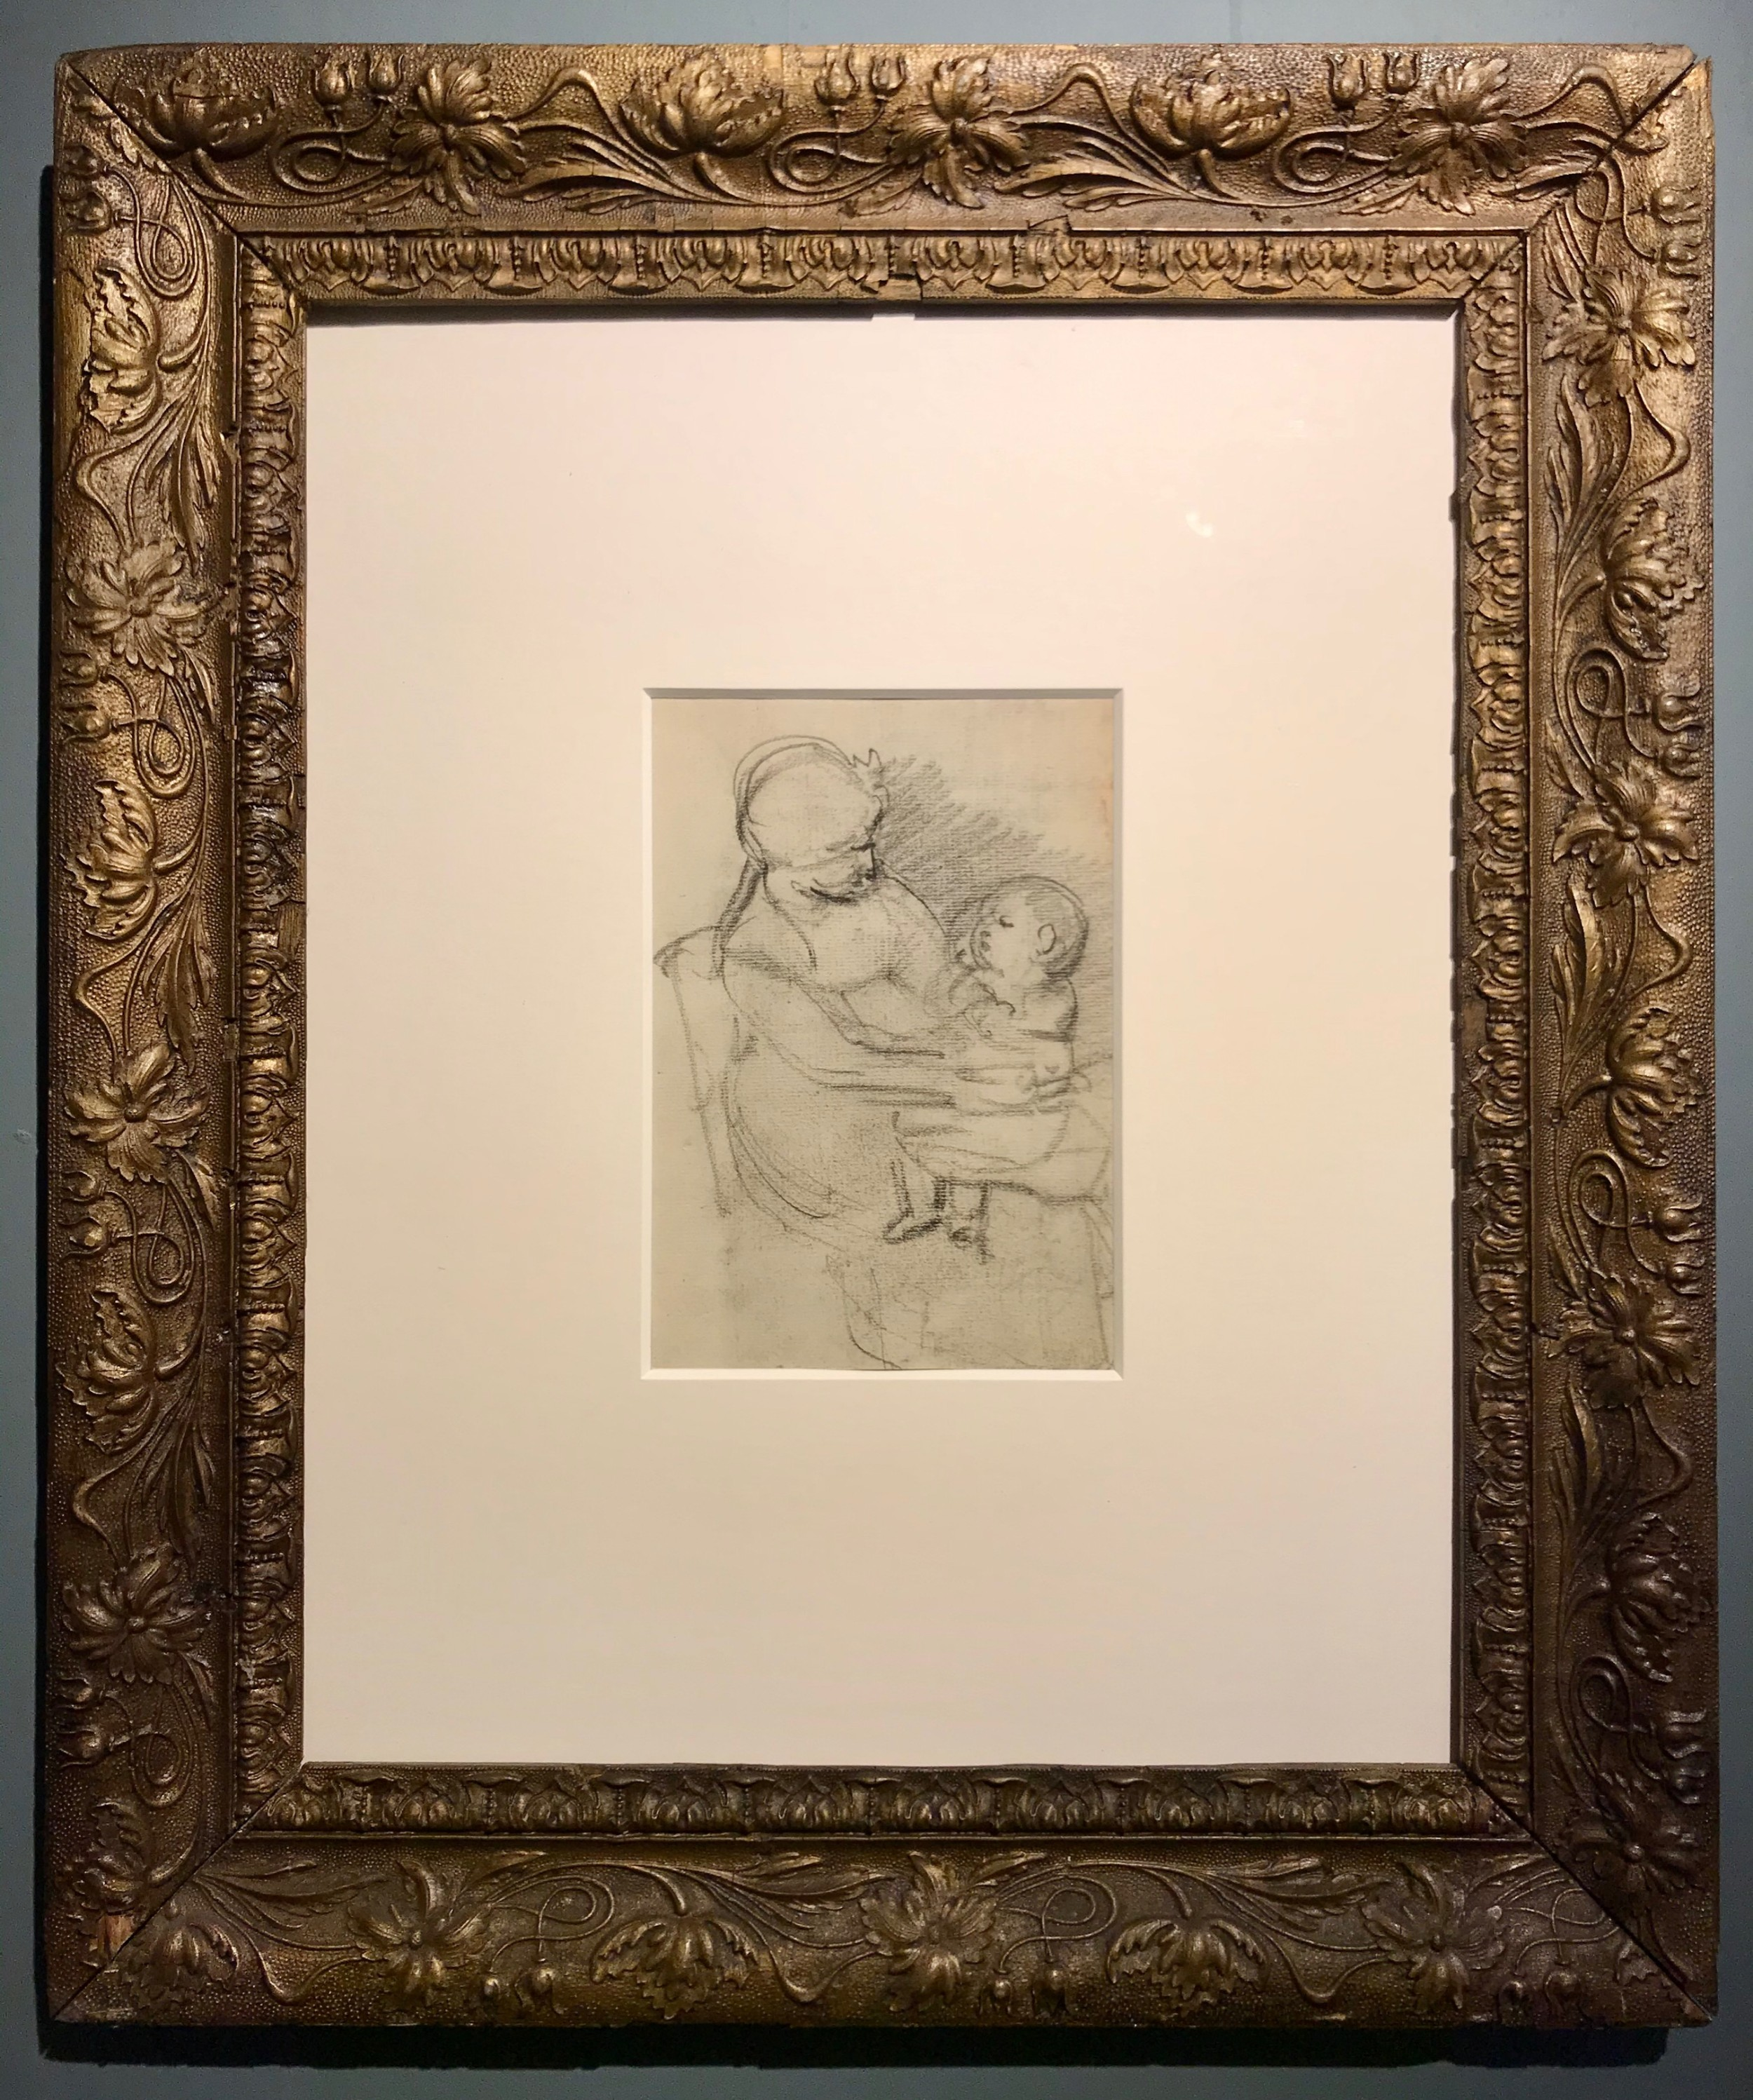 a tender doublesided drawing of a mother with her child by andrew geddes ara early 19th century scottish art figural drawing